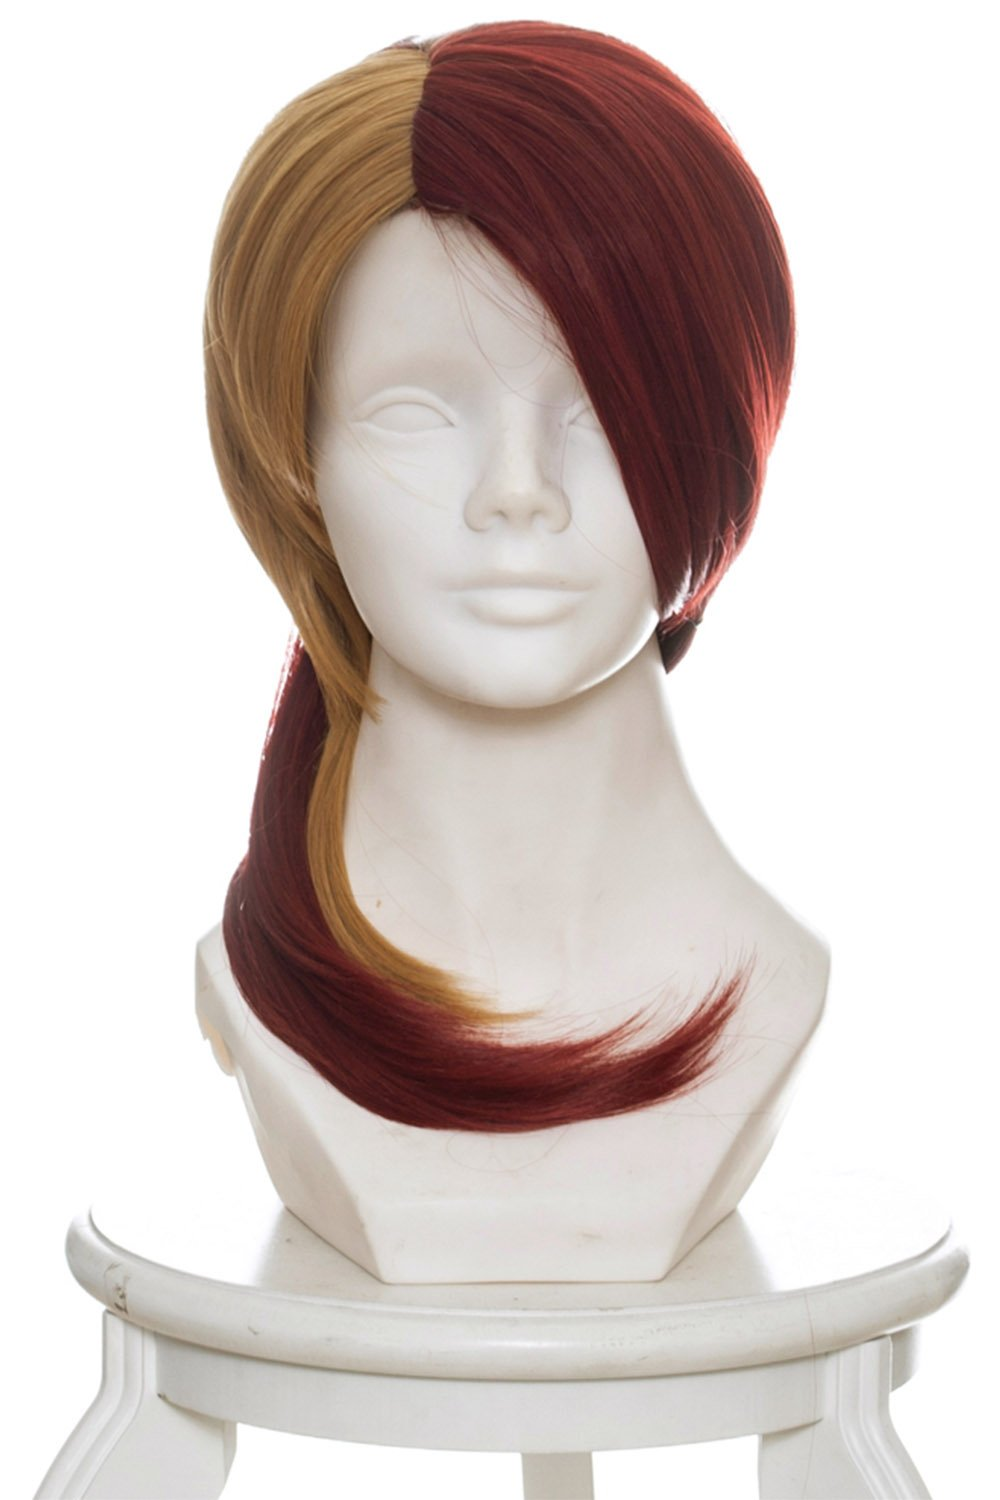 Land of the Lustrous Houseki no Kuni Rutile Cosplay Wigs